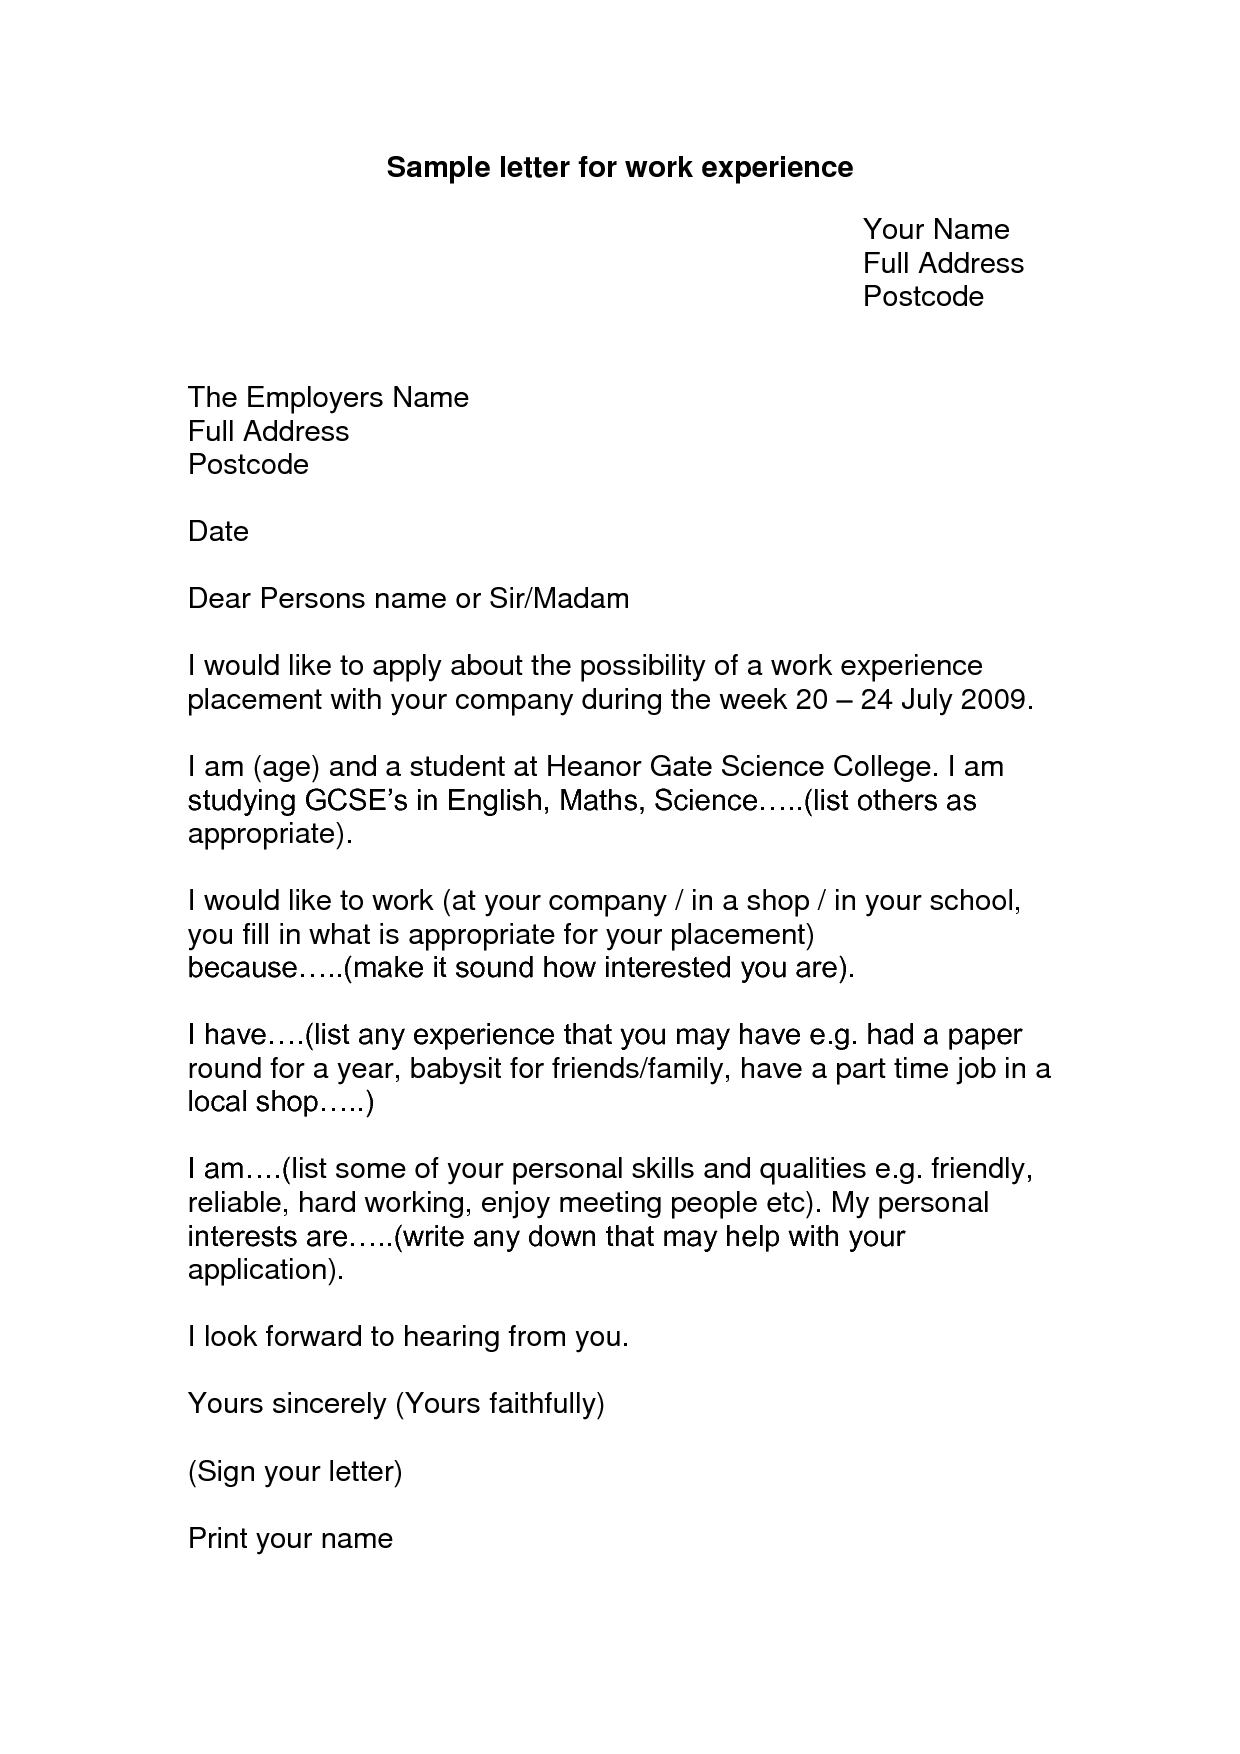 Work experience letter example google search looking for Technical writer cover letter no experience